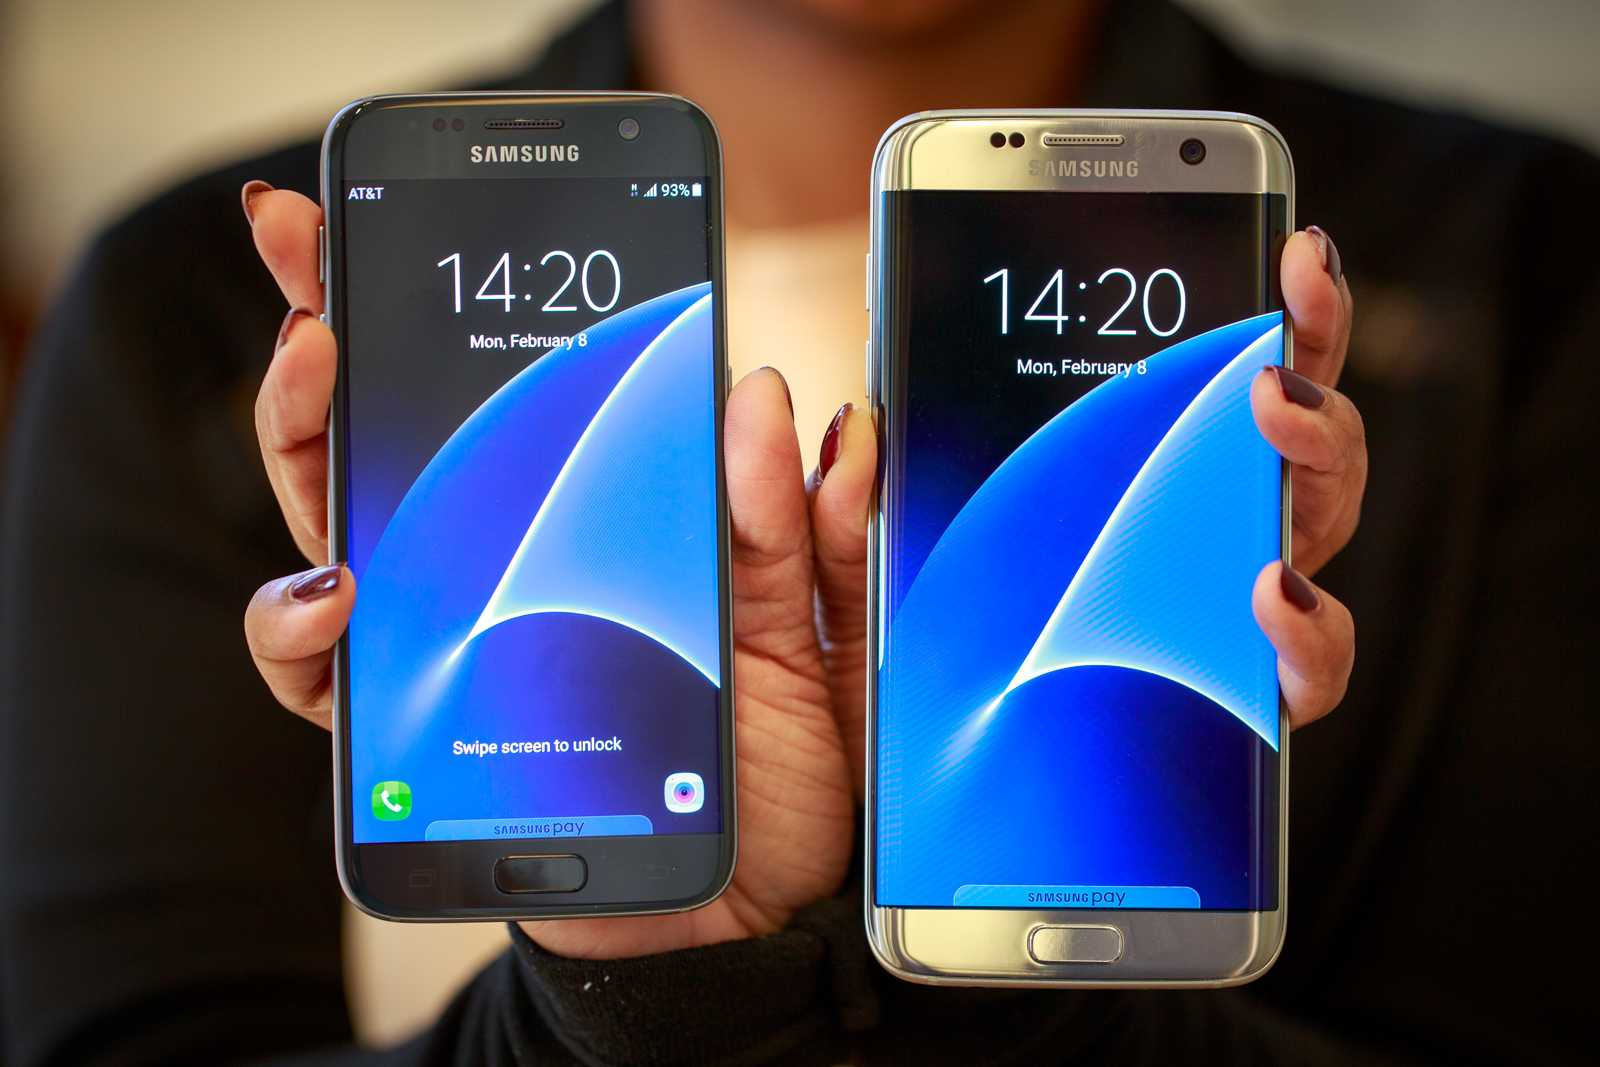 Warning: Samsung Galaxy S7, S7 Edge Can be Stolen and Reused by